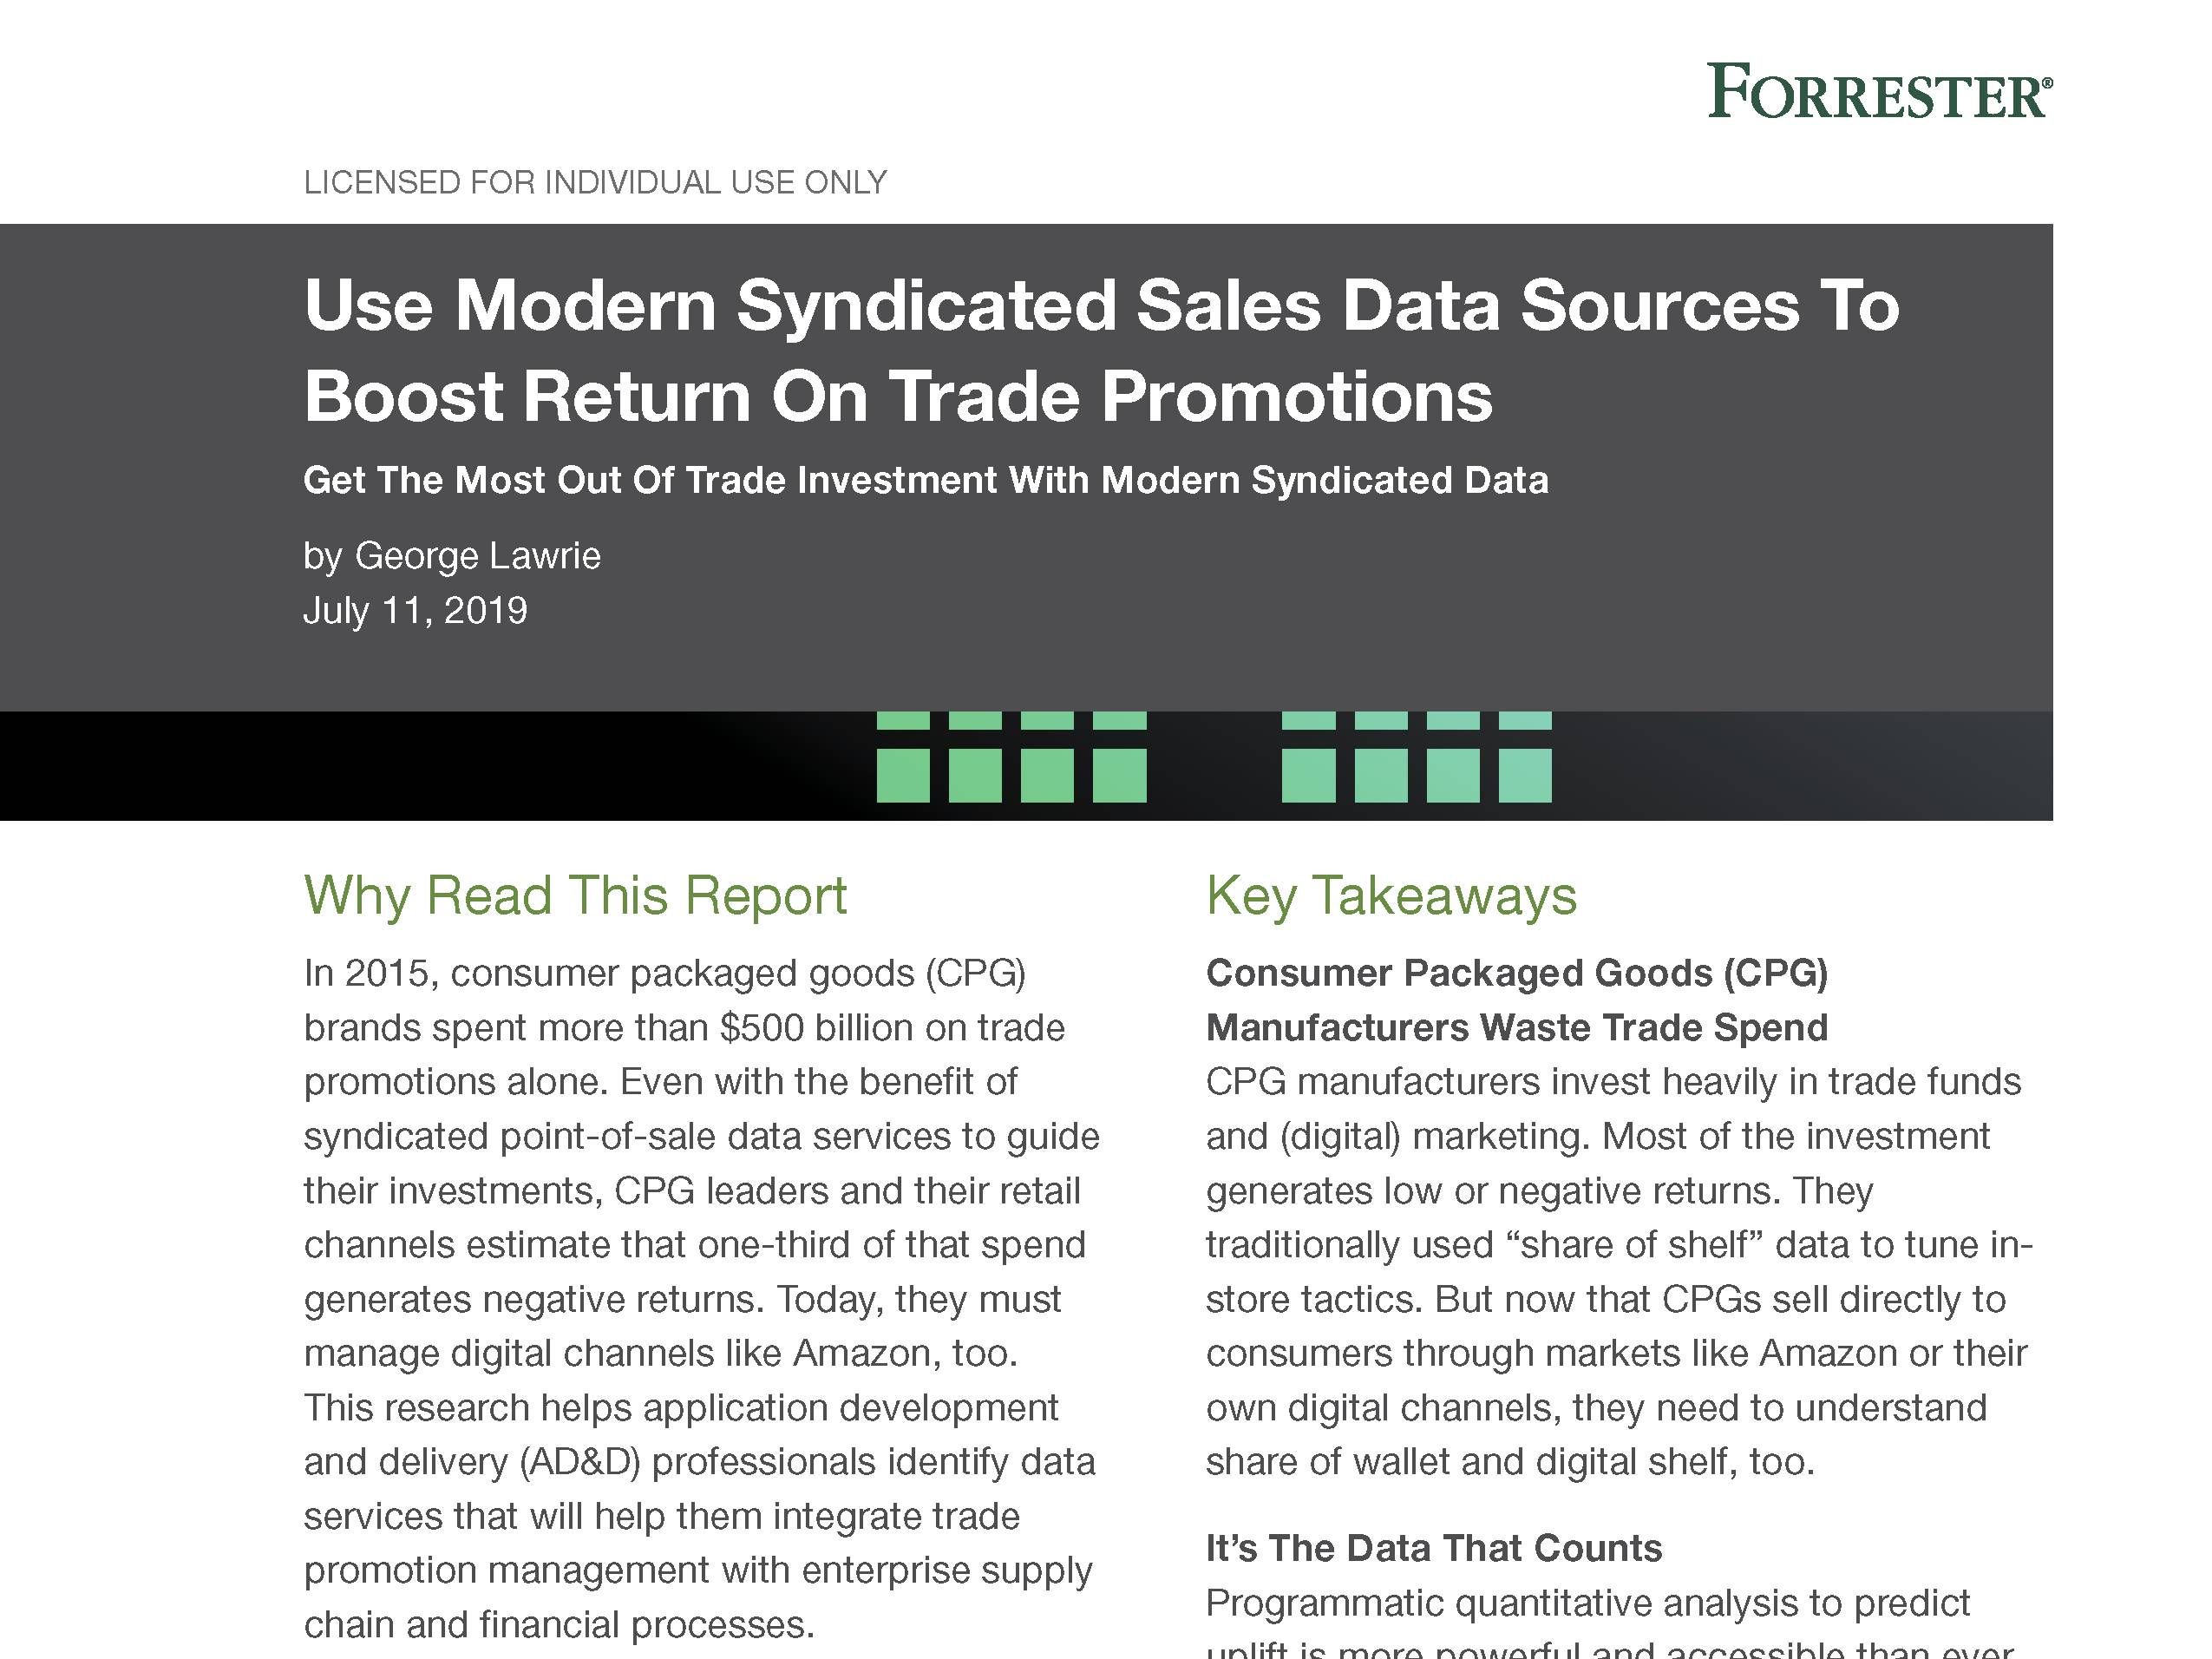 Use Modern Syndicated Sales Data Sources To Boost Return On Trade Promotions